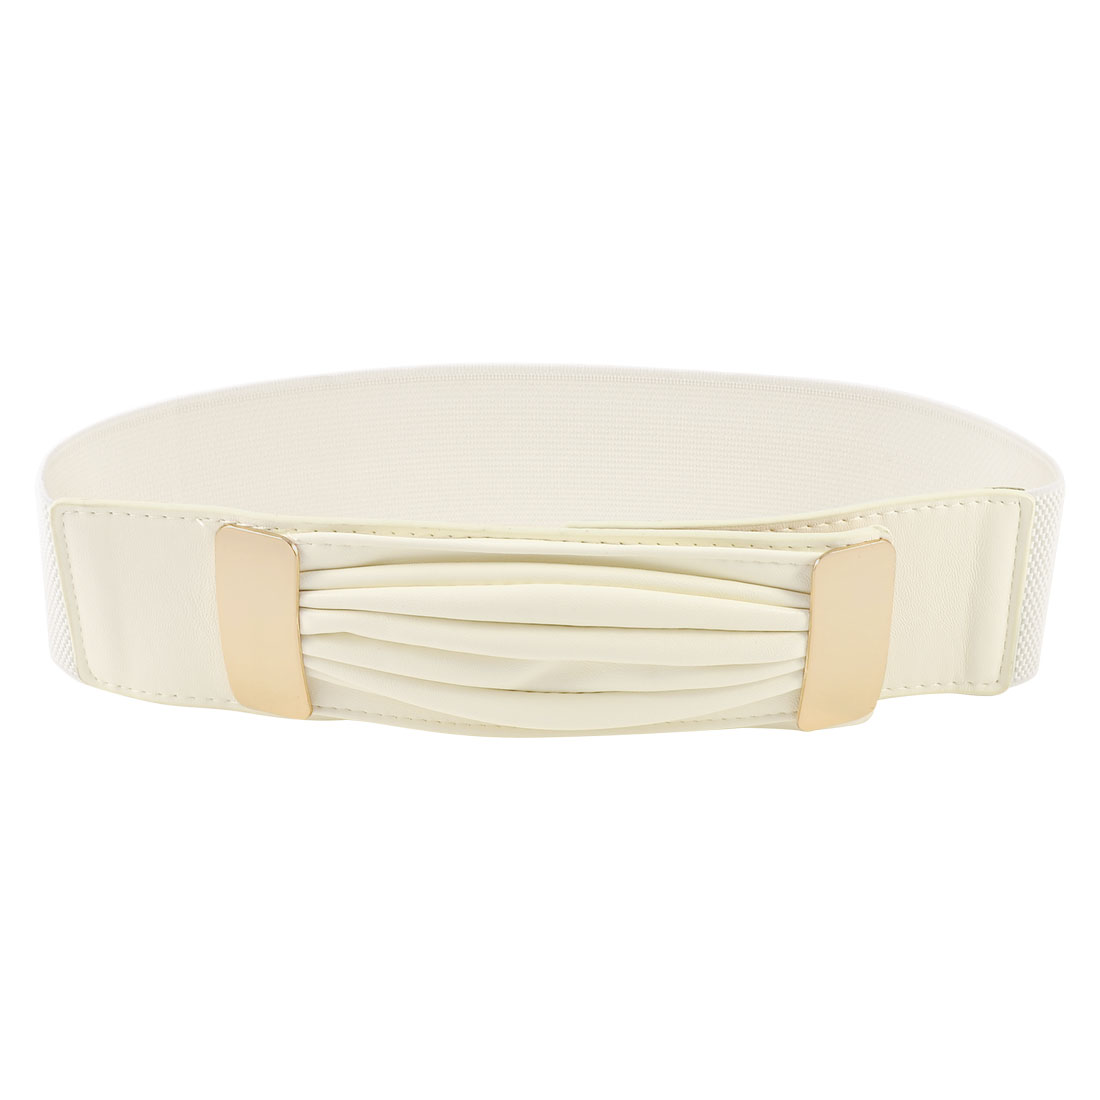 Metal Hoop Buckle 6cm Width Stretchy Waist Cinch Band Belt White for Woman